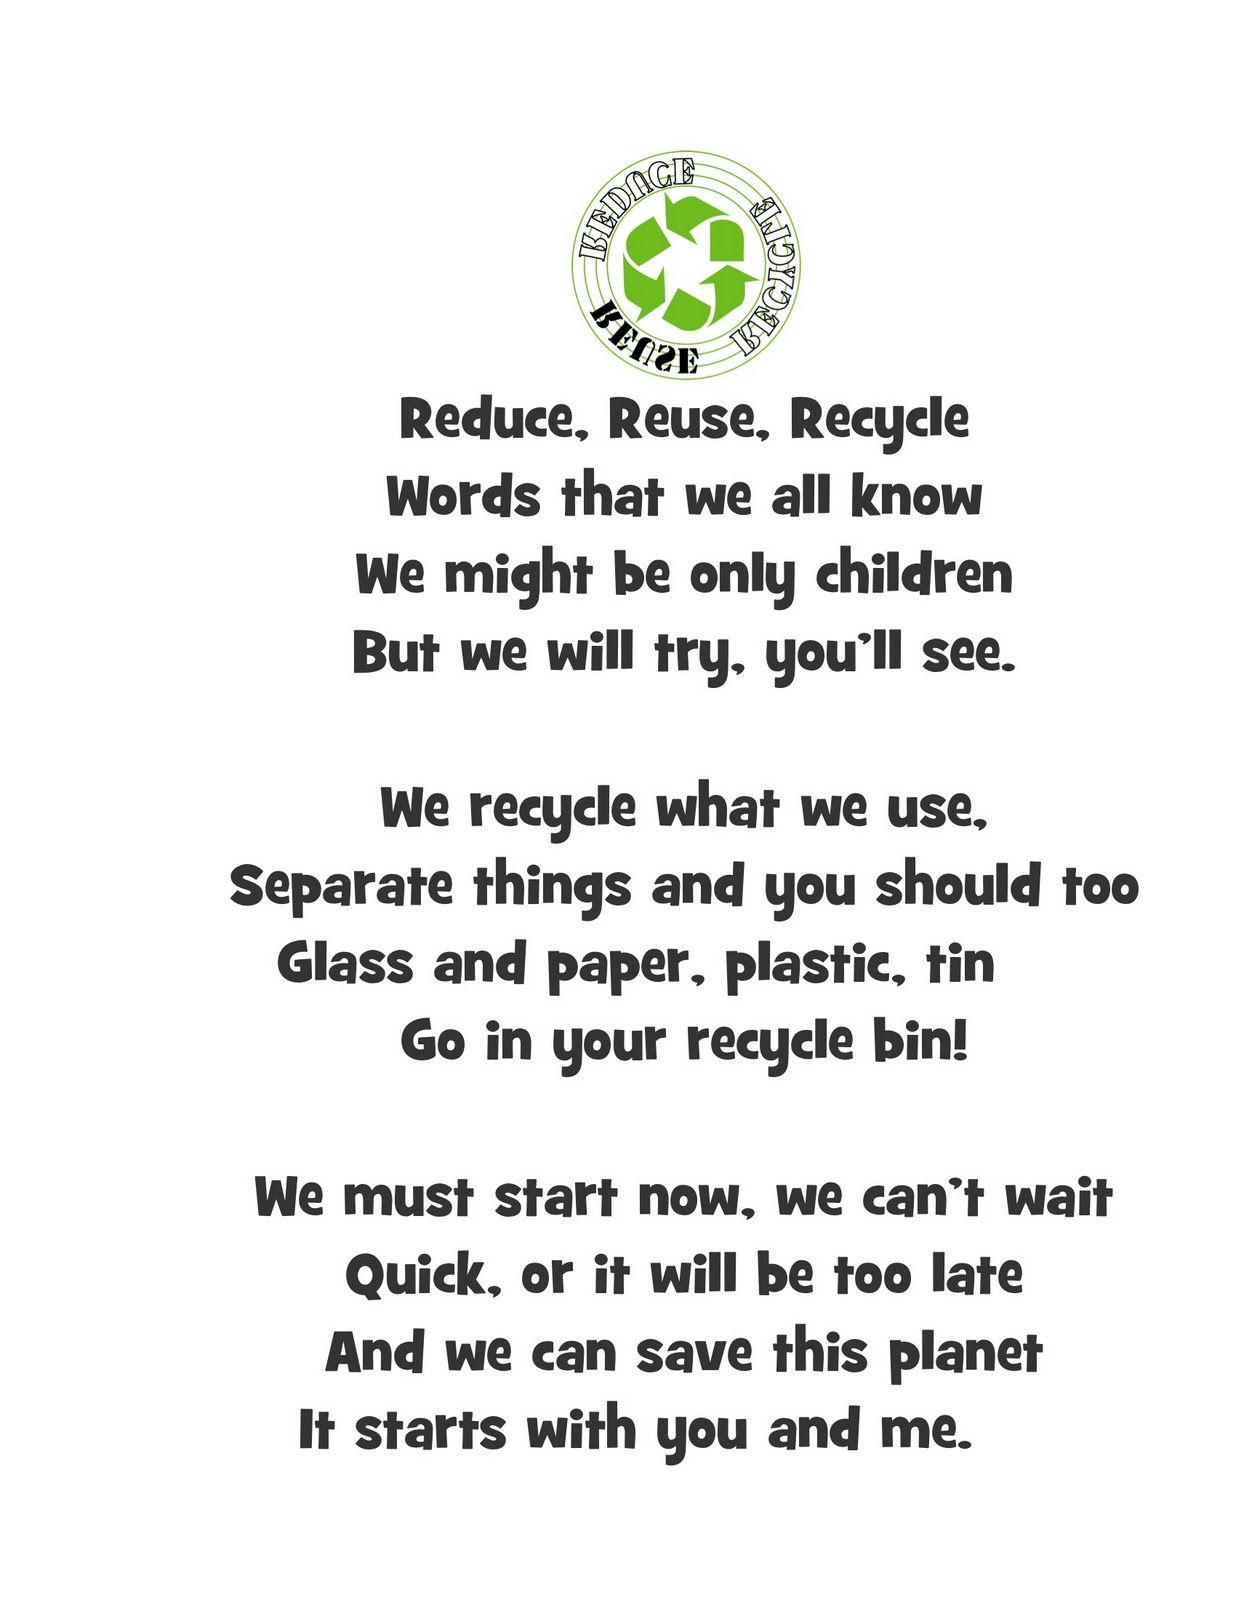 worksheet Reduce Reuse Recycle Worksheets 17 best images about reduce reuse recycle on pinterest old cds license plates and snake bubbles